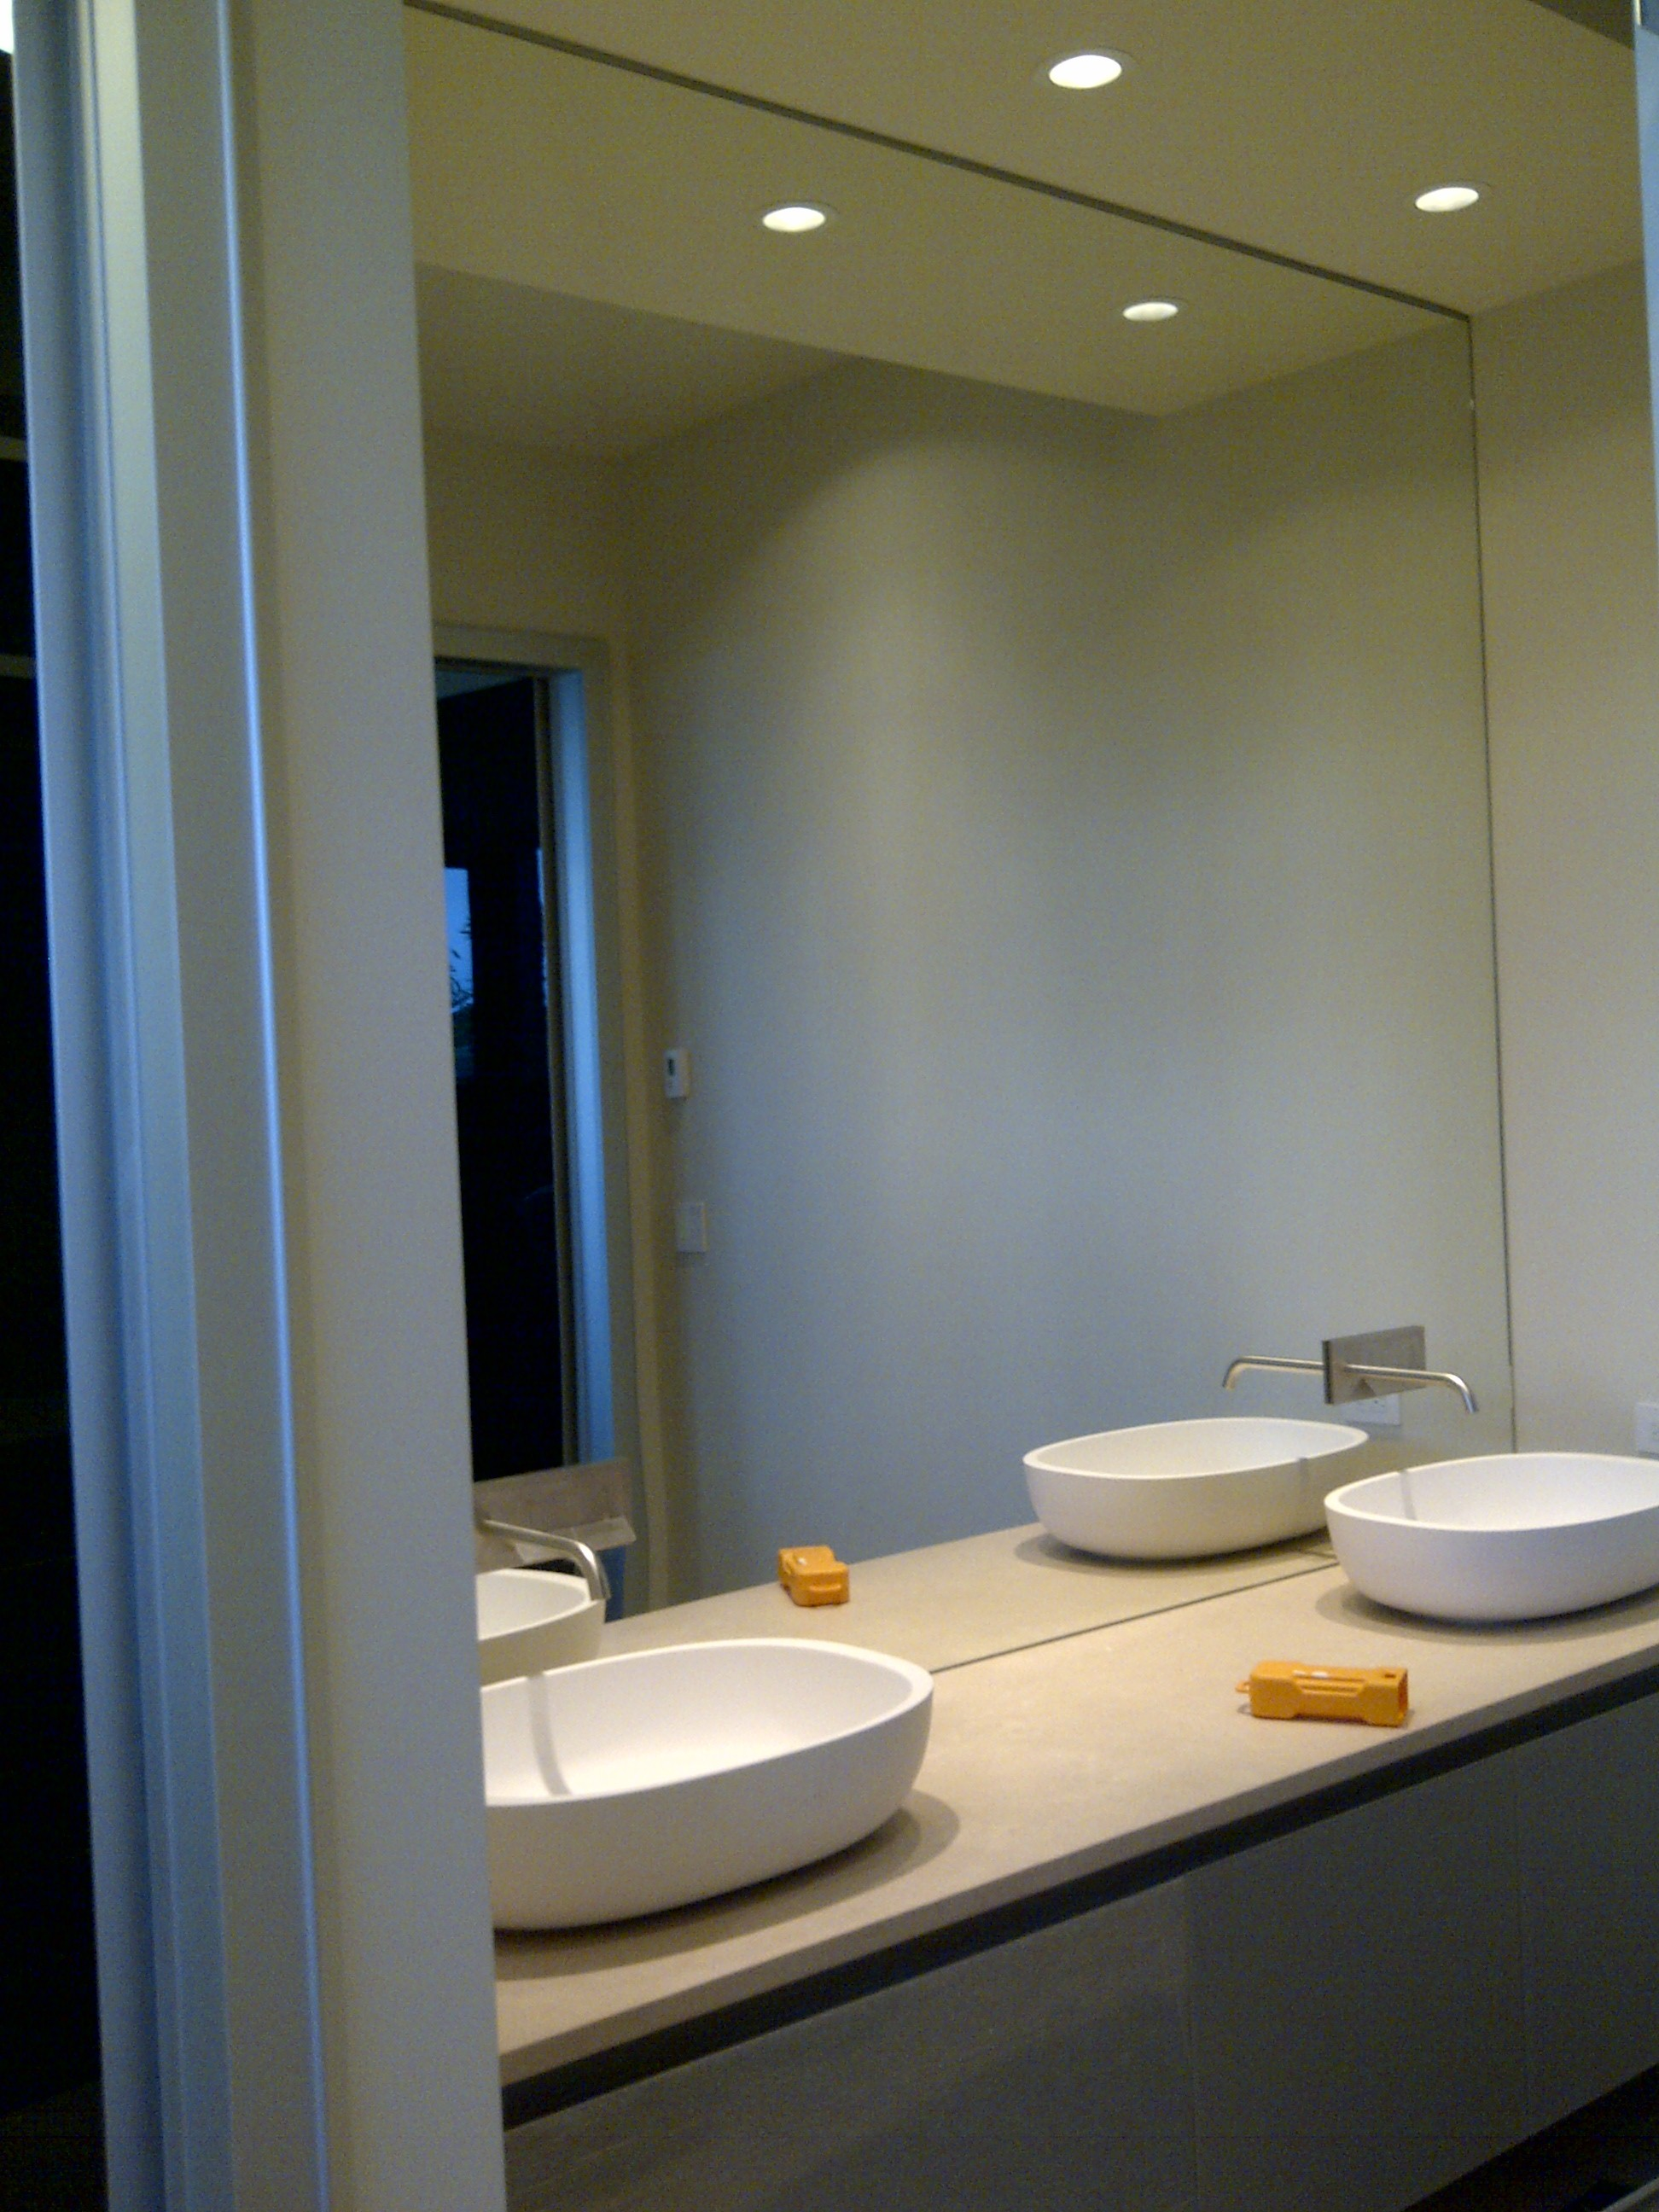 Mirrors  Repair, Replace And Install In Vancouver Bc